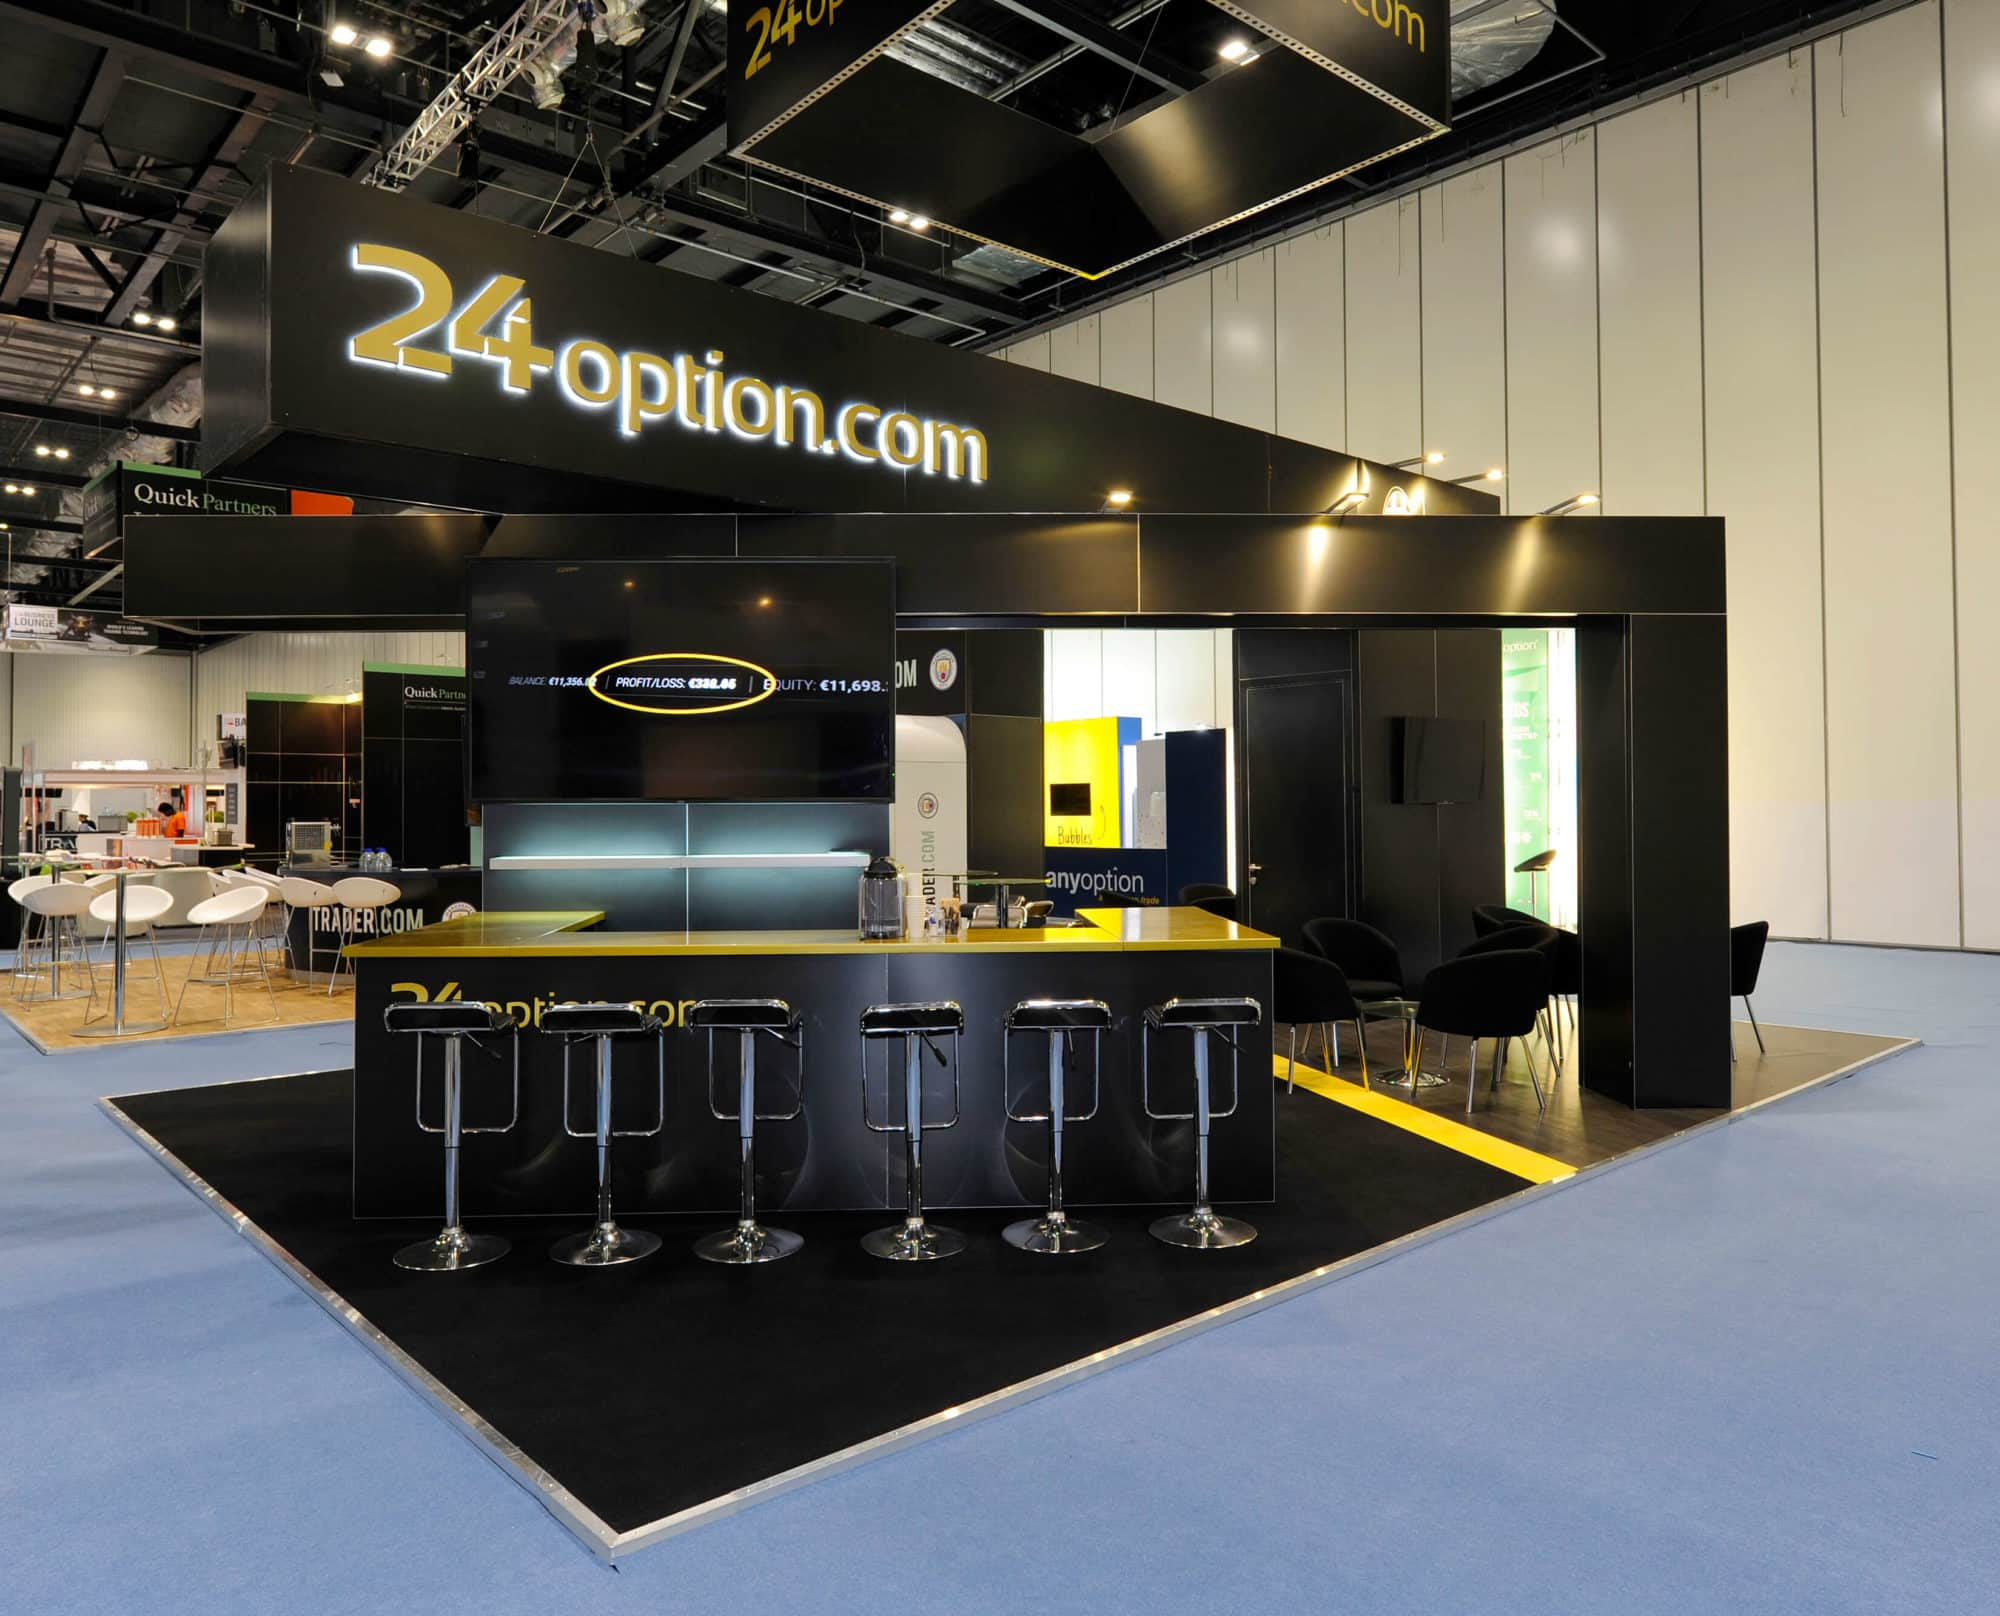 Exhibition Stand 2017 : Bespoke exhibition stands custom designed symbiosis